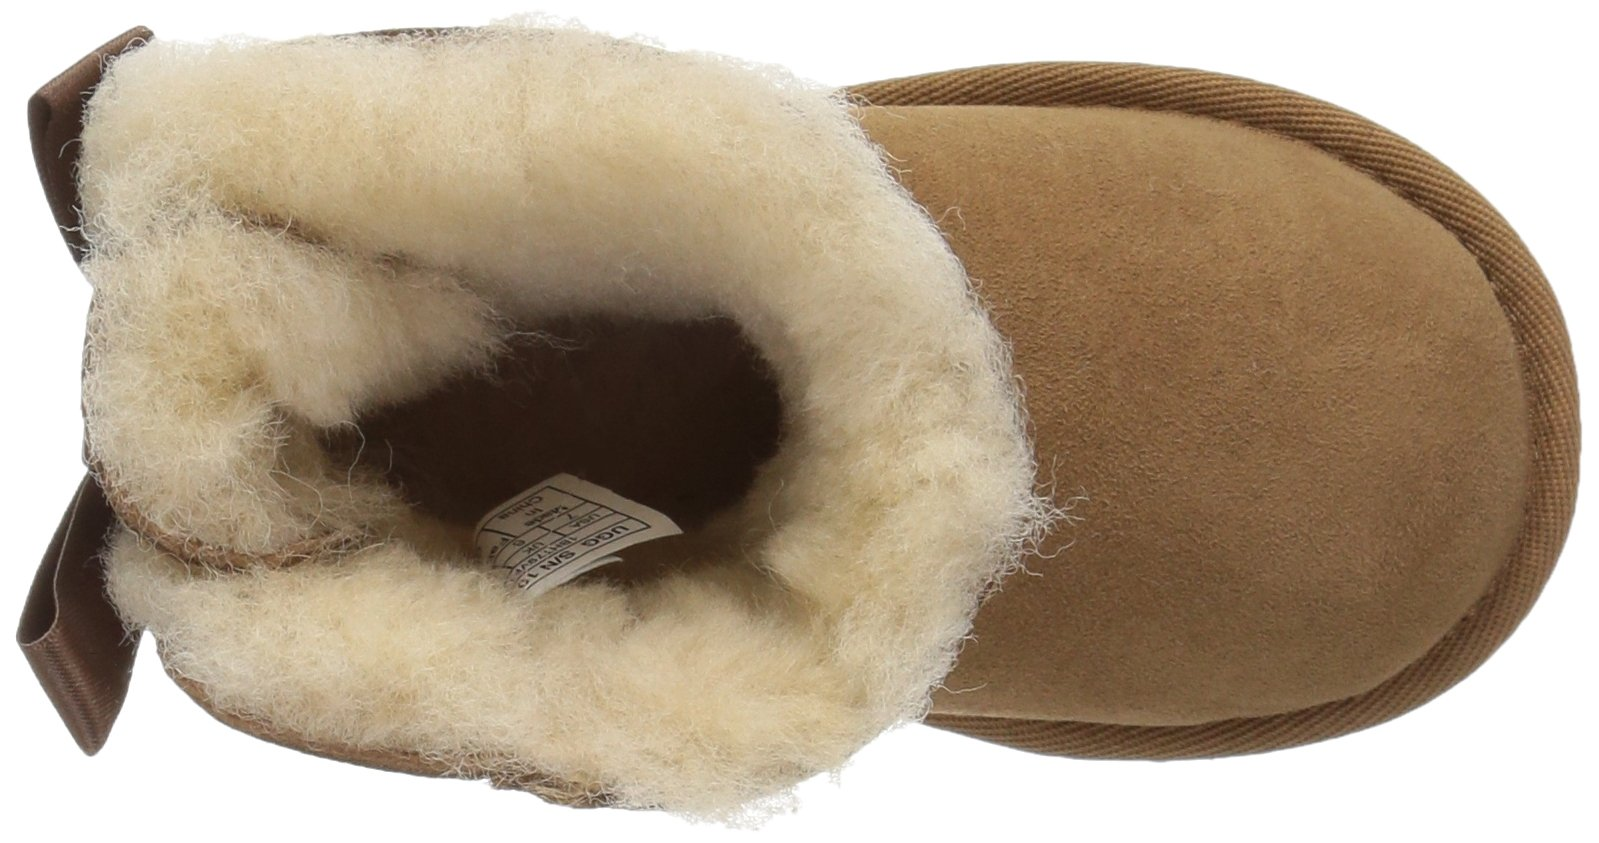 UGG Girls T Mini Bailey Bow II Pull-On Boot, Chestnut, 10 M US Toddler by UGG (Image #8)